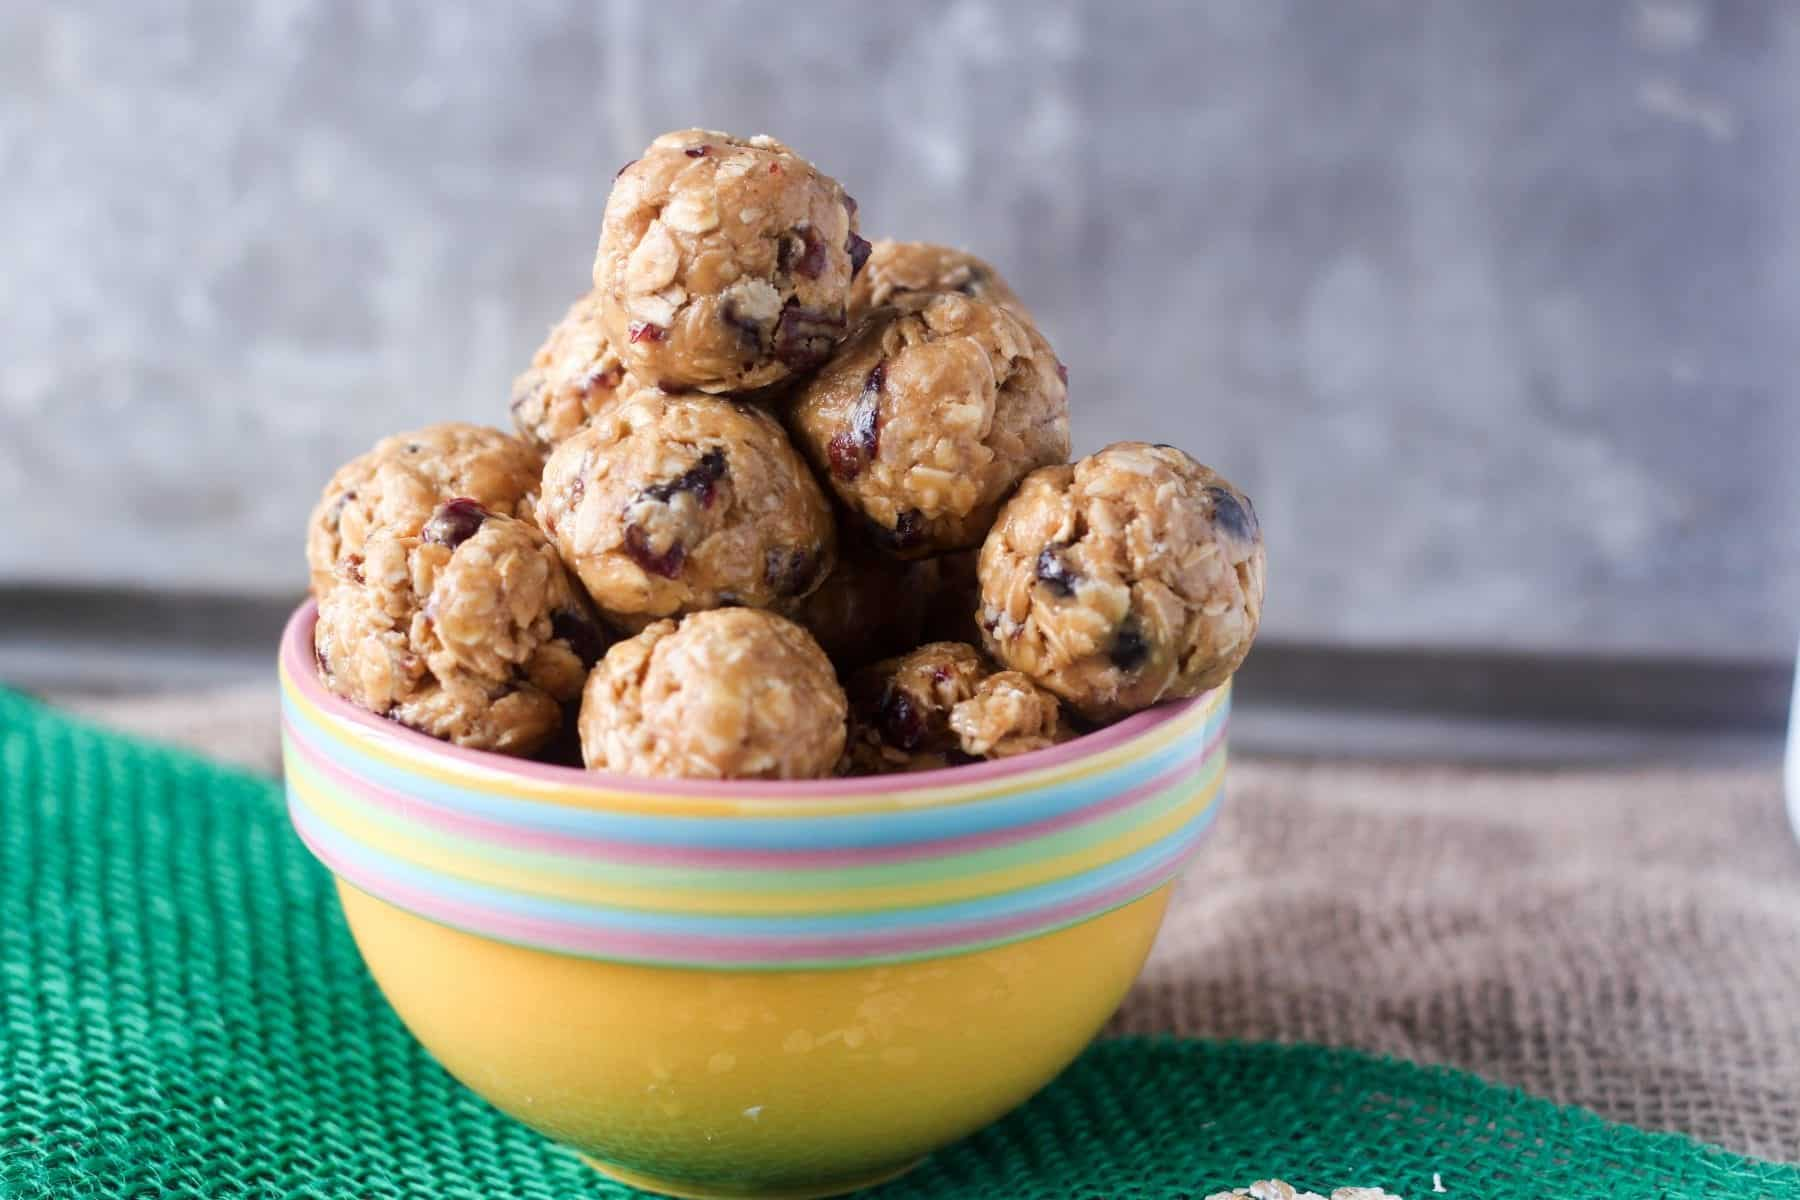 These peanut butter energy balls are high protein, incorporating peanut butter, protein powder, fruit and nuts! Honey makes these protein balls slightly sweet.